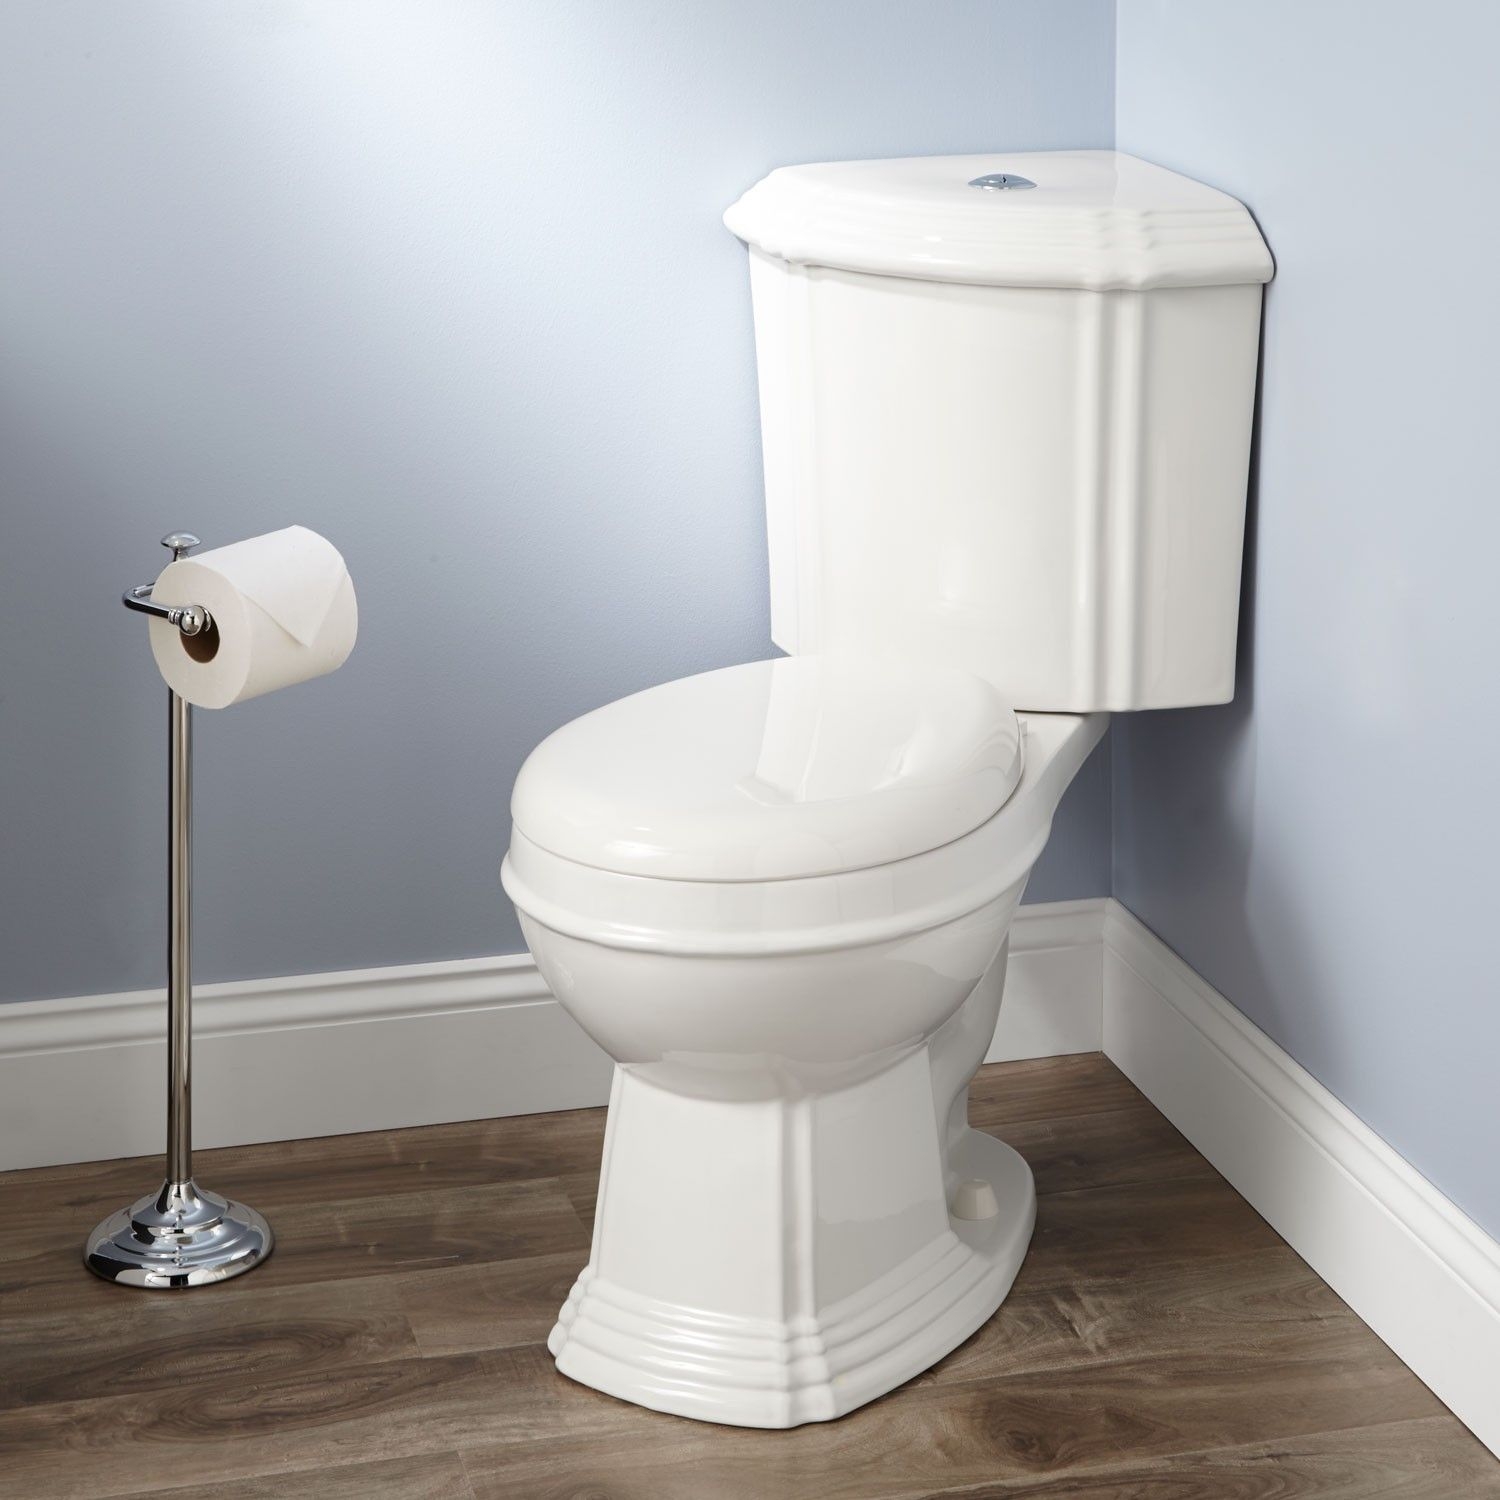 Regent DualFlush Corner Toilet With Seat Corner Toilet Toilet - Elongated bowl toilet dimensions